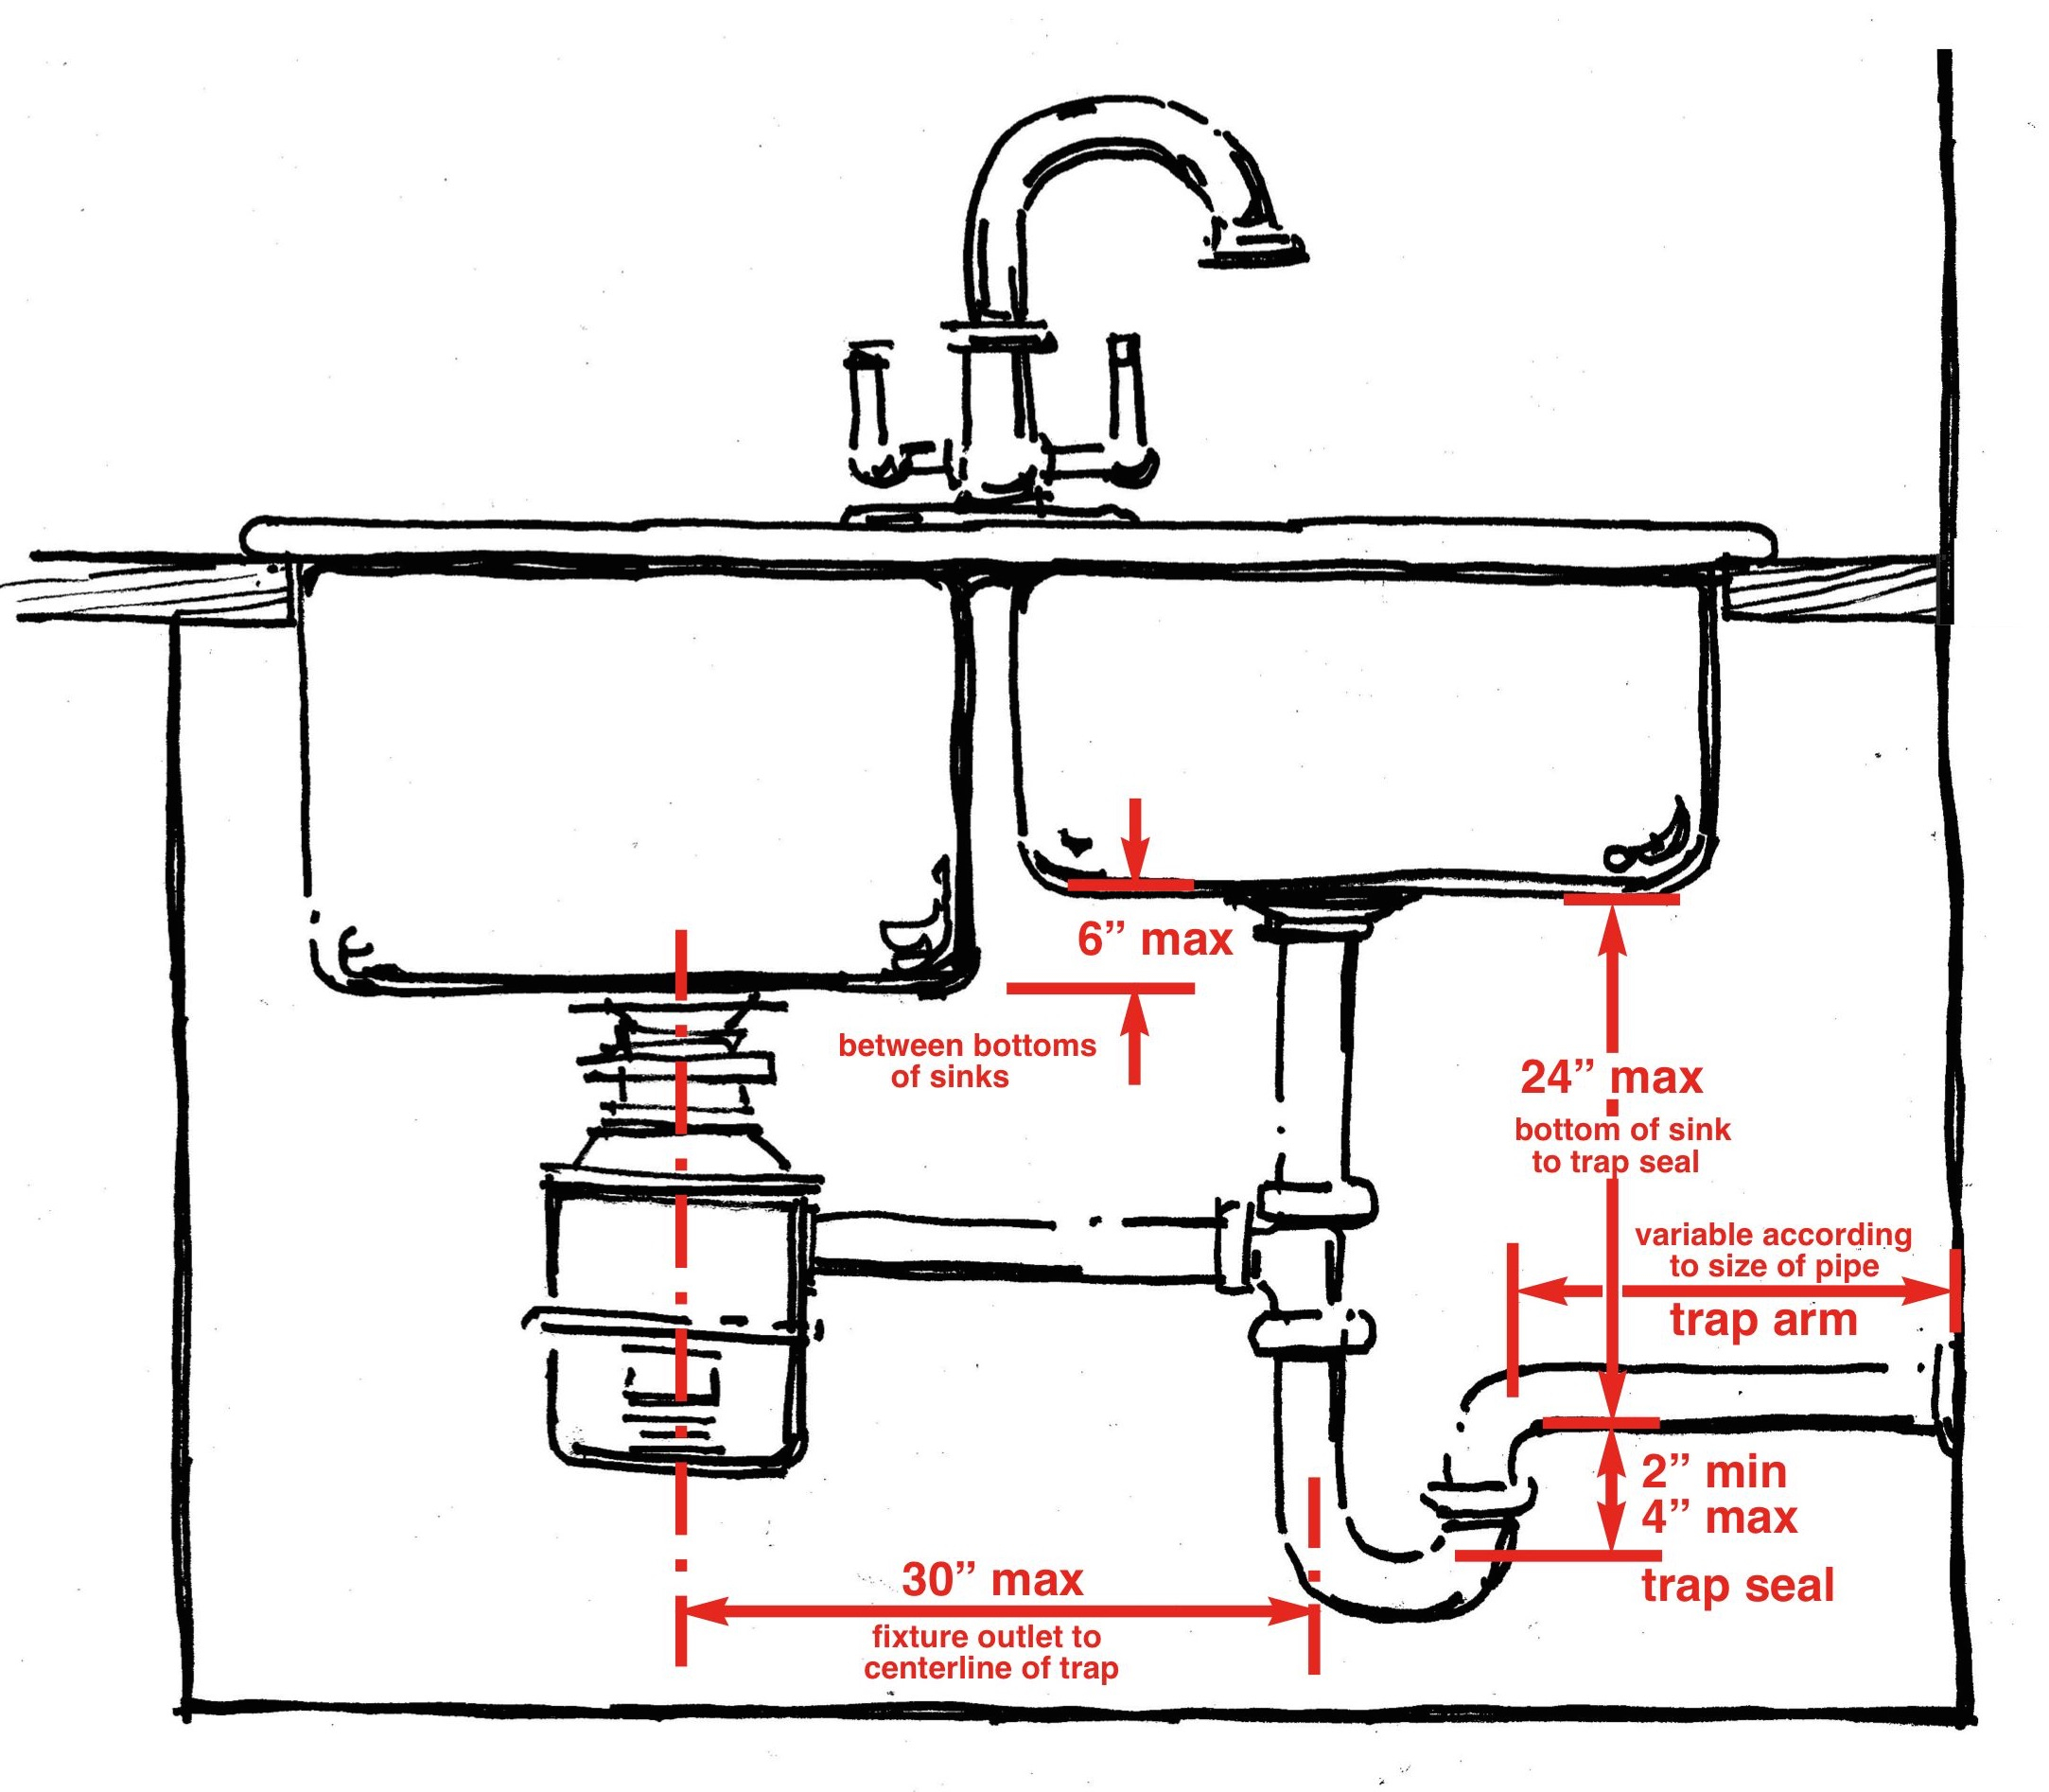 Sink Plumbing Diagram What Are The Code Requirements For Layout Of Drain Piping Under Sinks